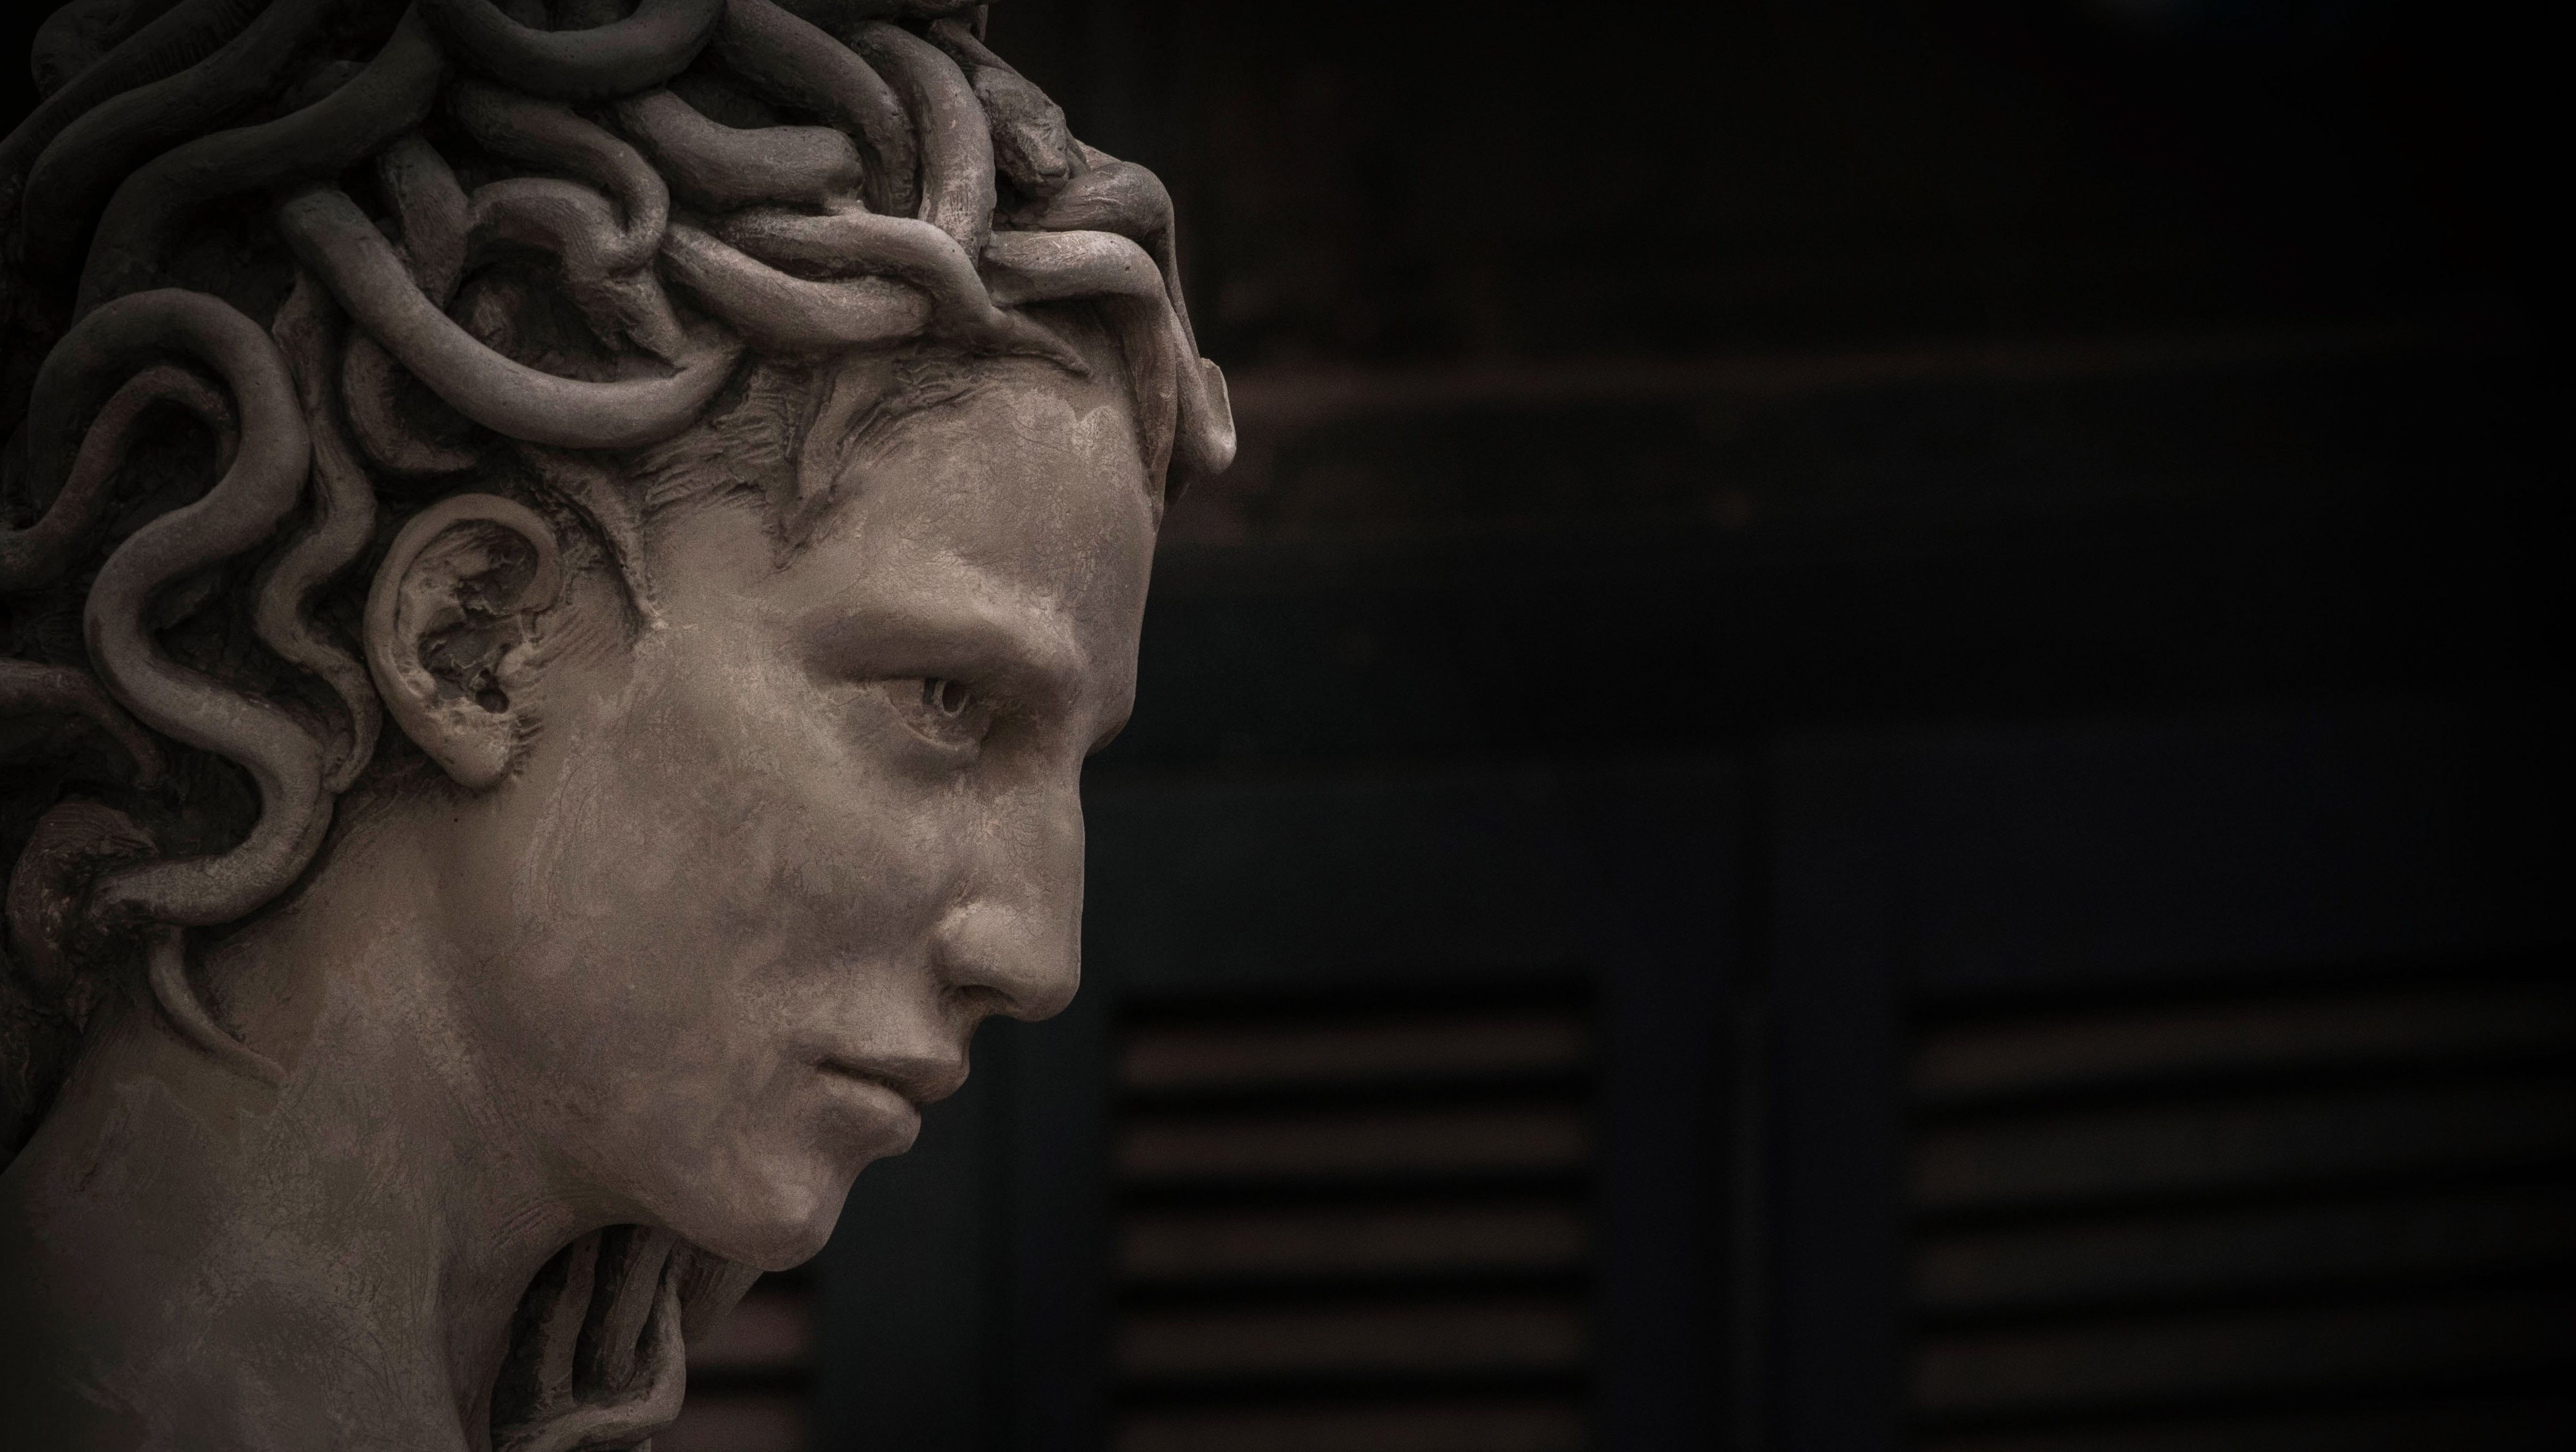 The Medusa statue that became a symbol of feminist rage